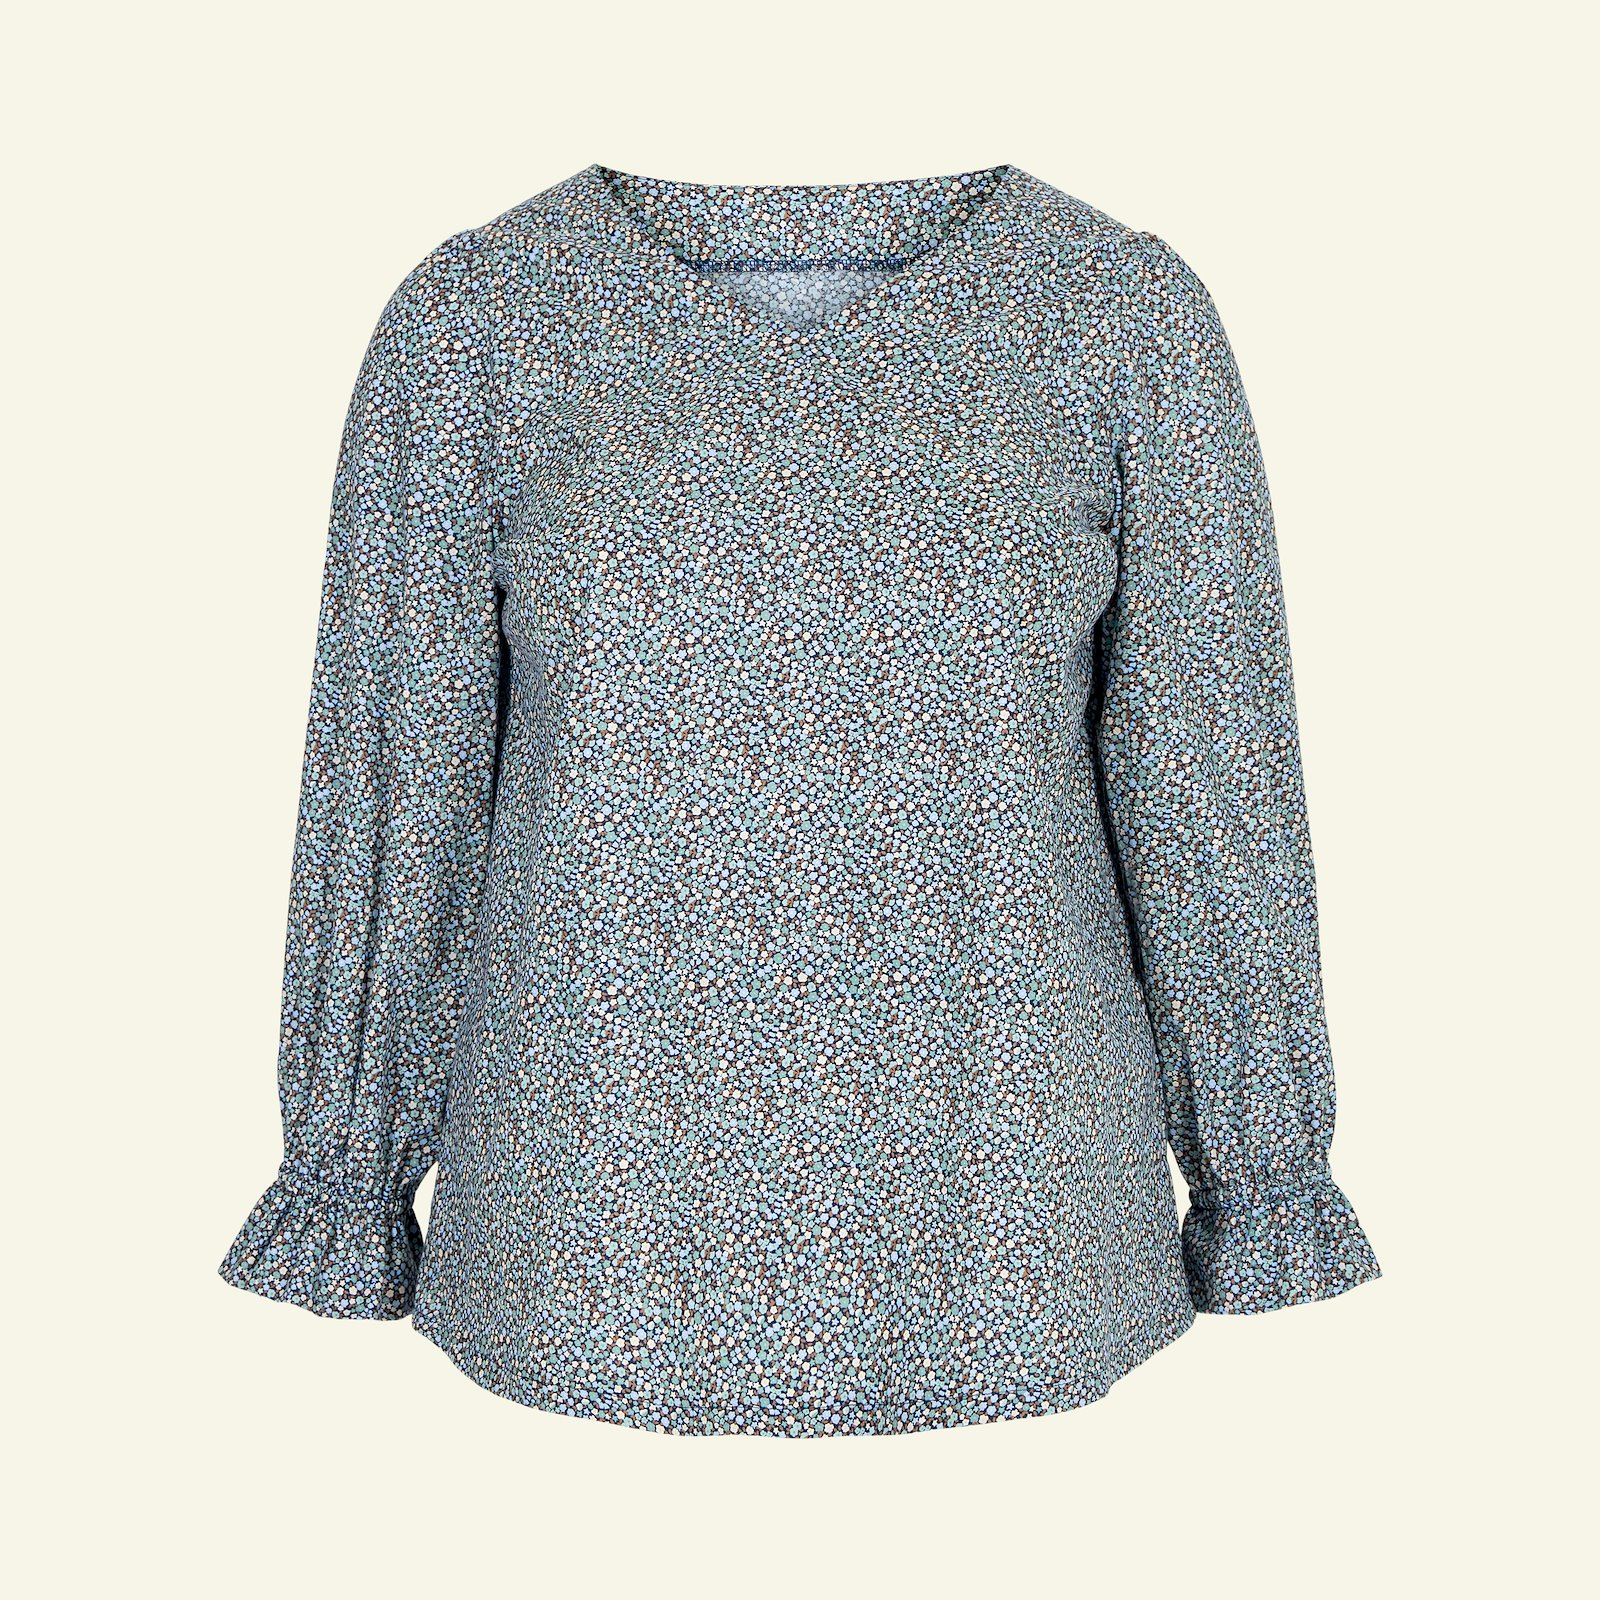 Blouse with long and short sleeve, 46/18 p72006_852408_sskit